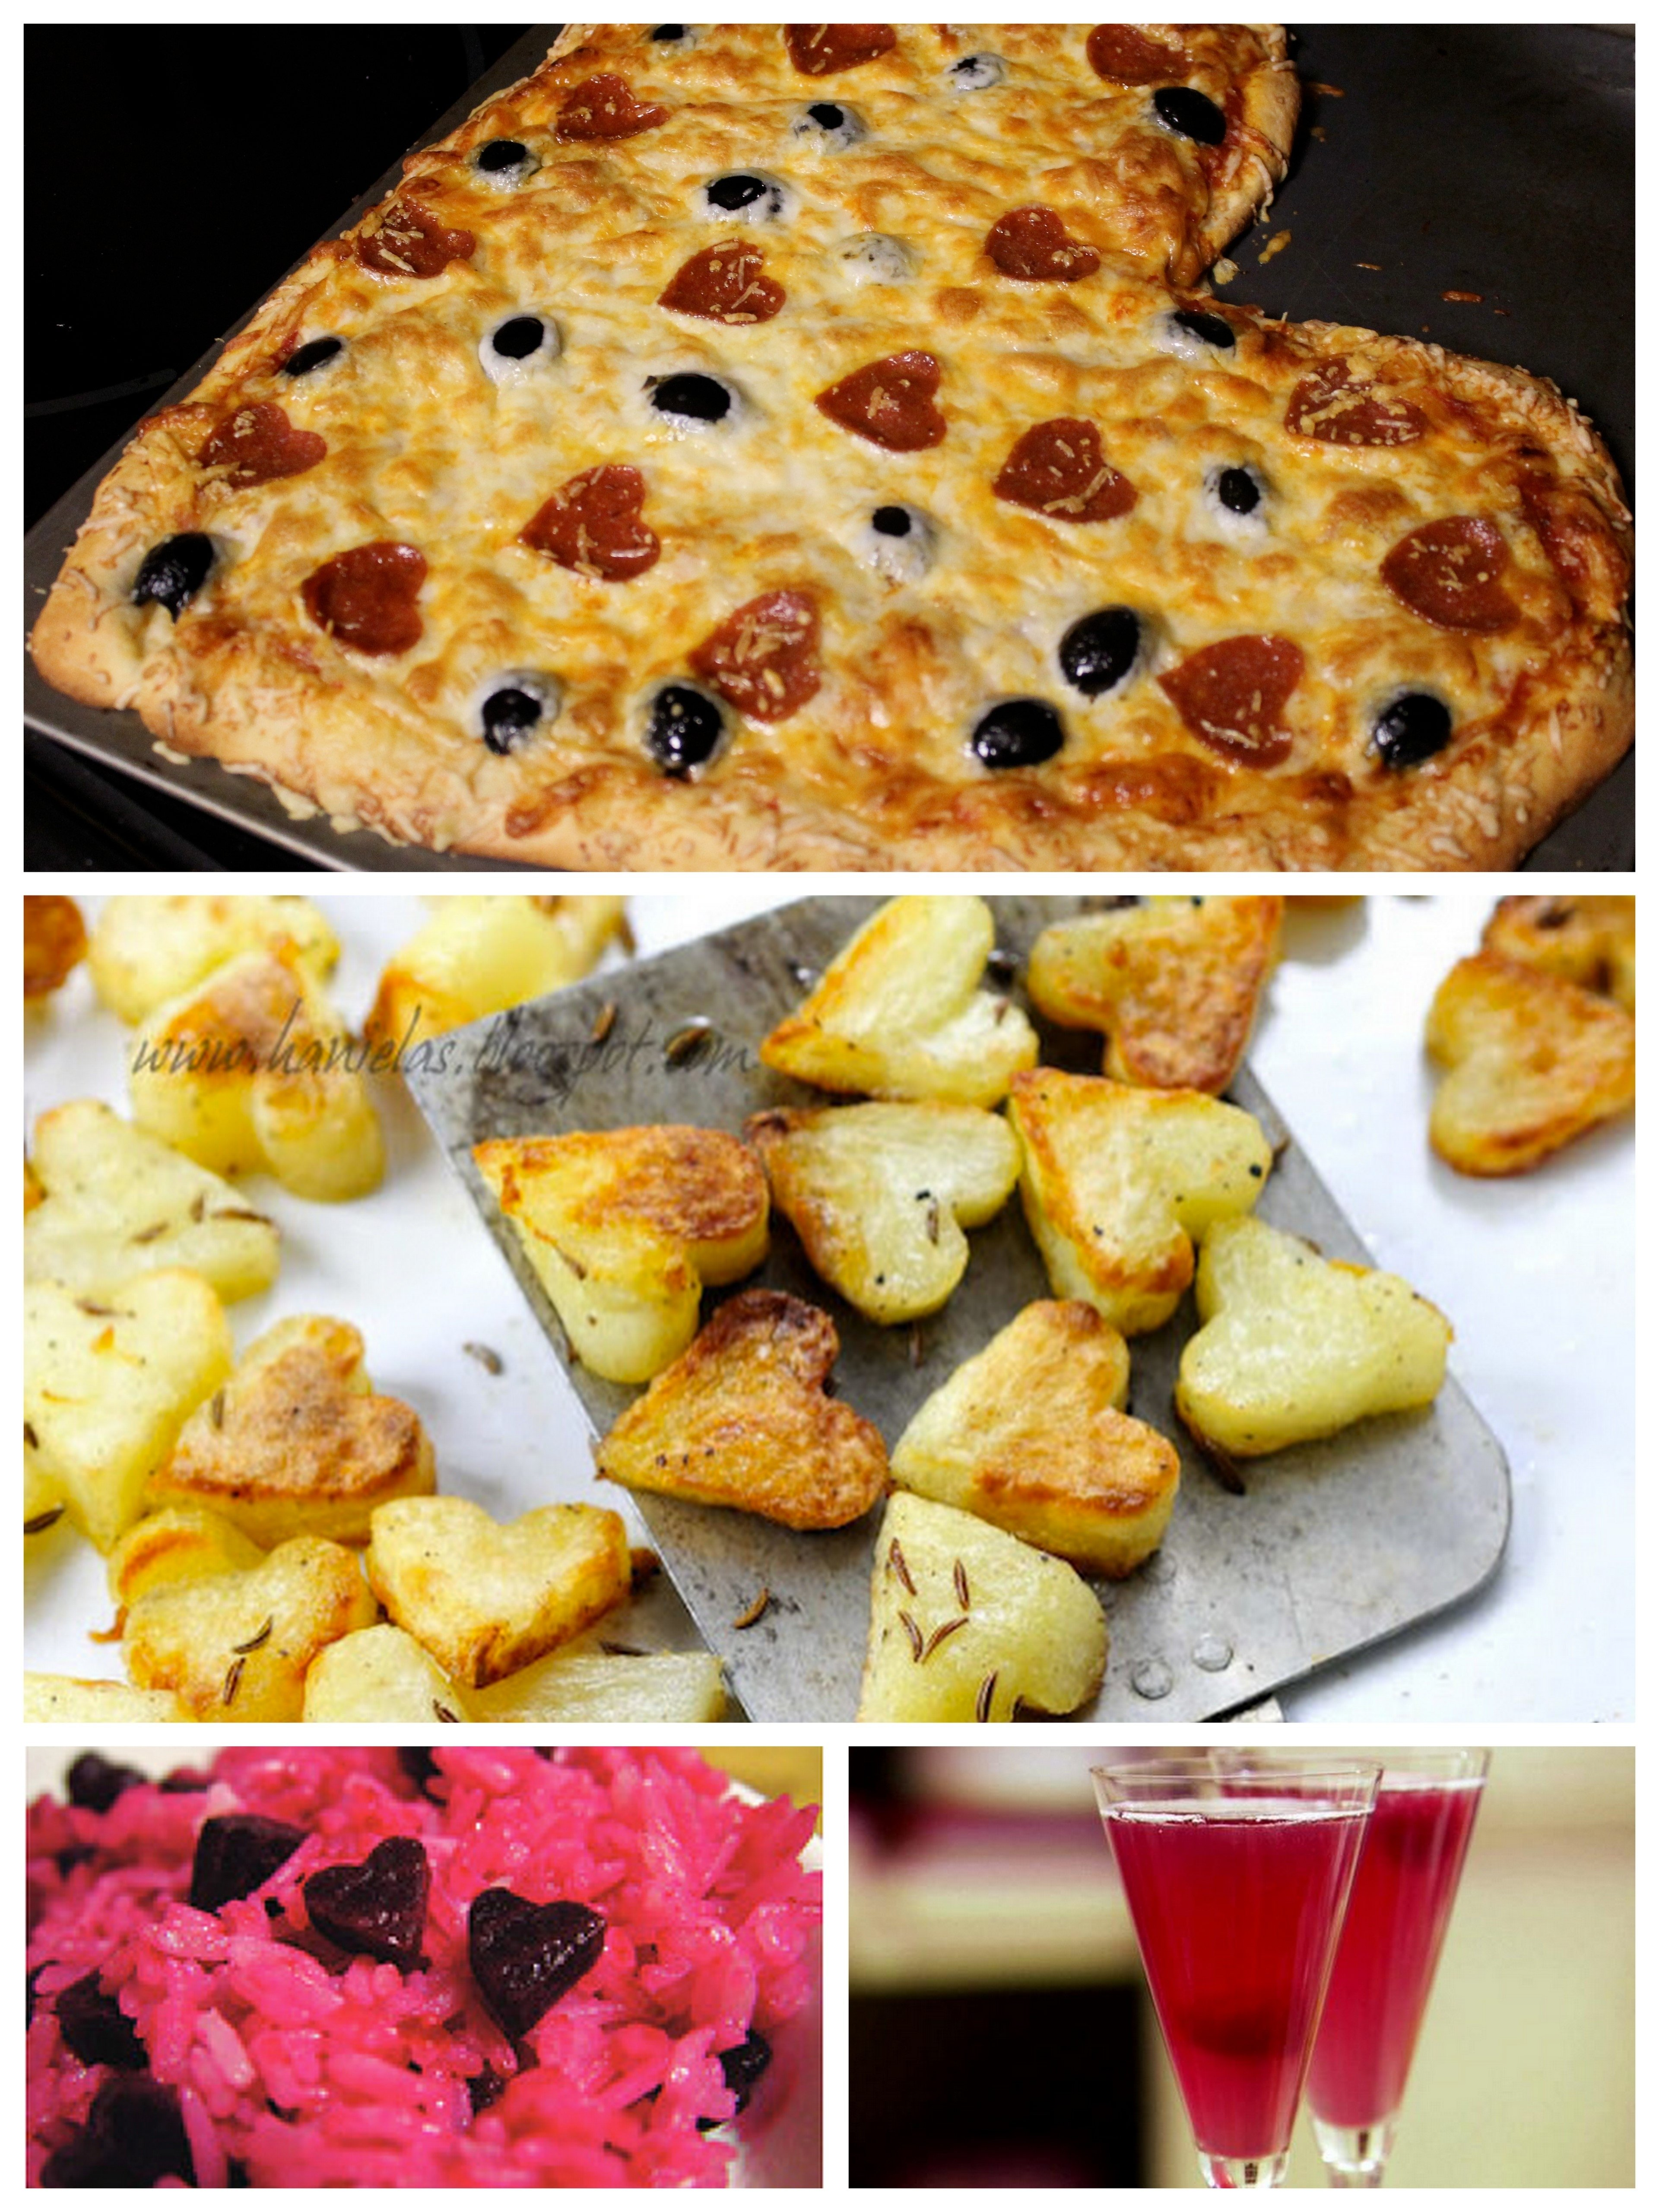 10 Pretty Food Ideas For Valentines Day valentines day food ideas 1 2020